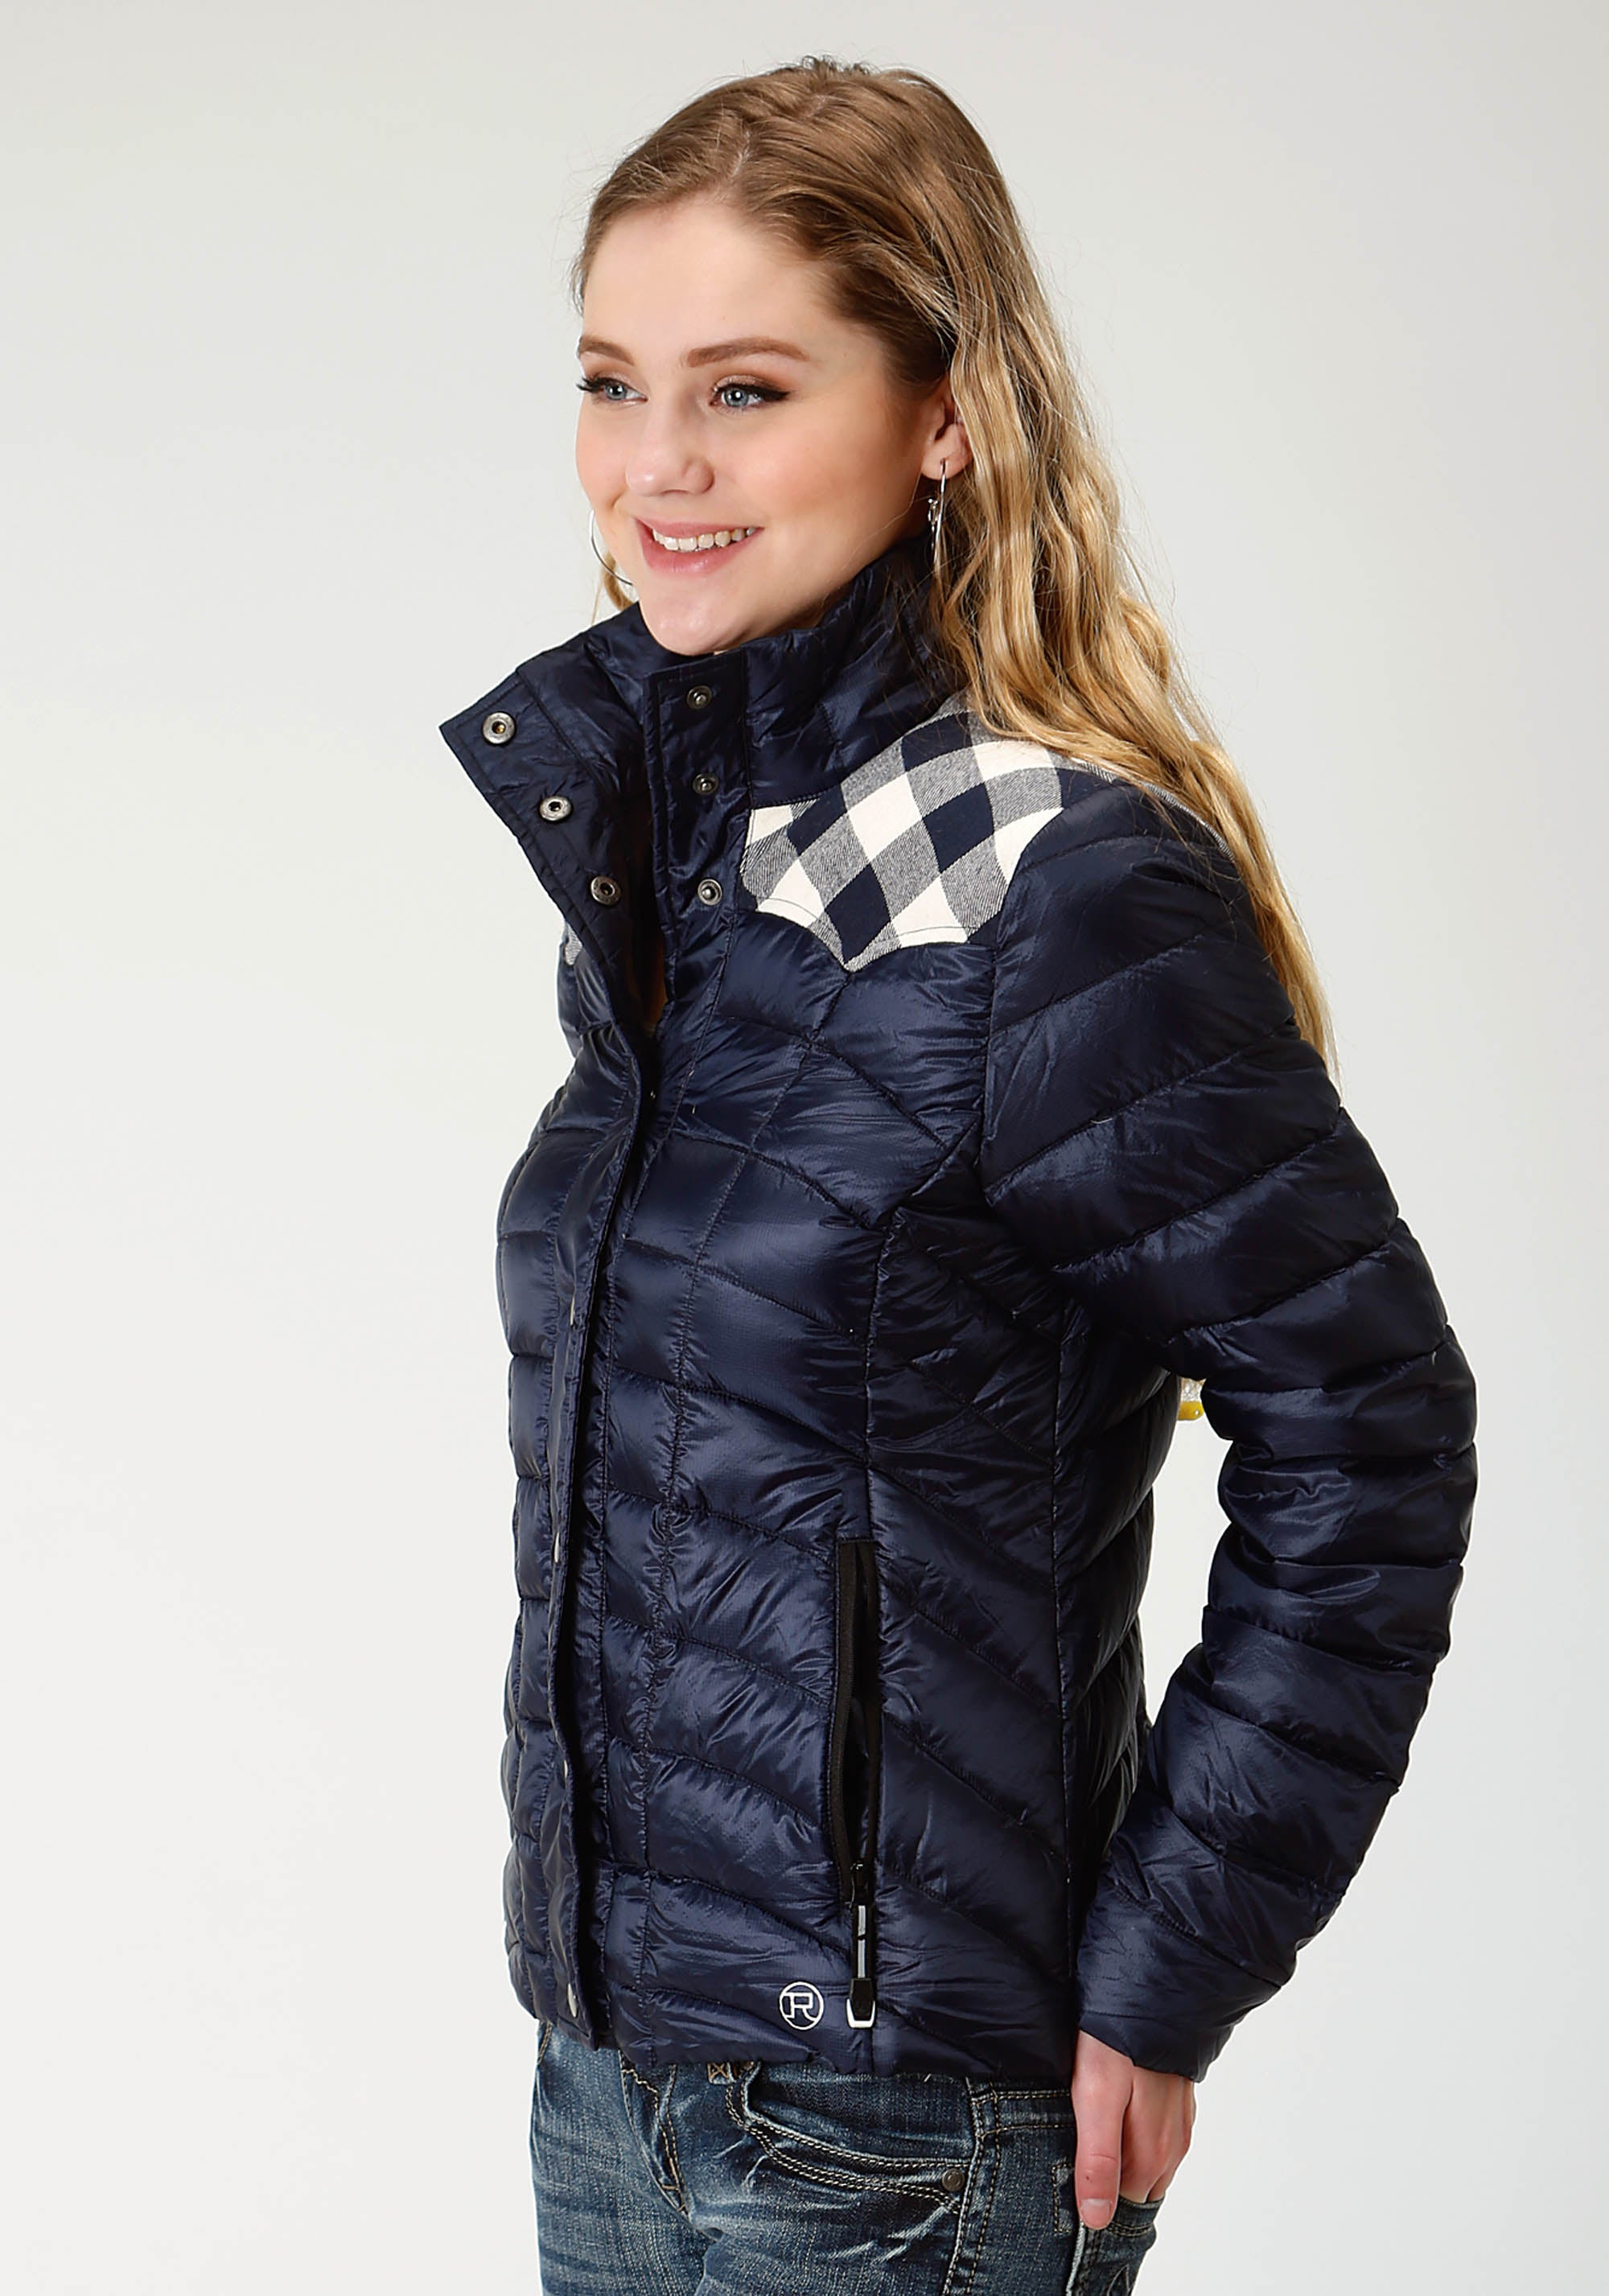 ROPER WOMENS BLUE 2384 QUILTED DOWN COAT ROPER OUTERWEAR- LADIES JACKET